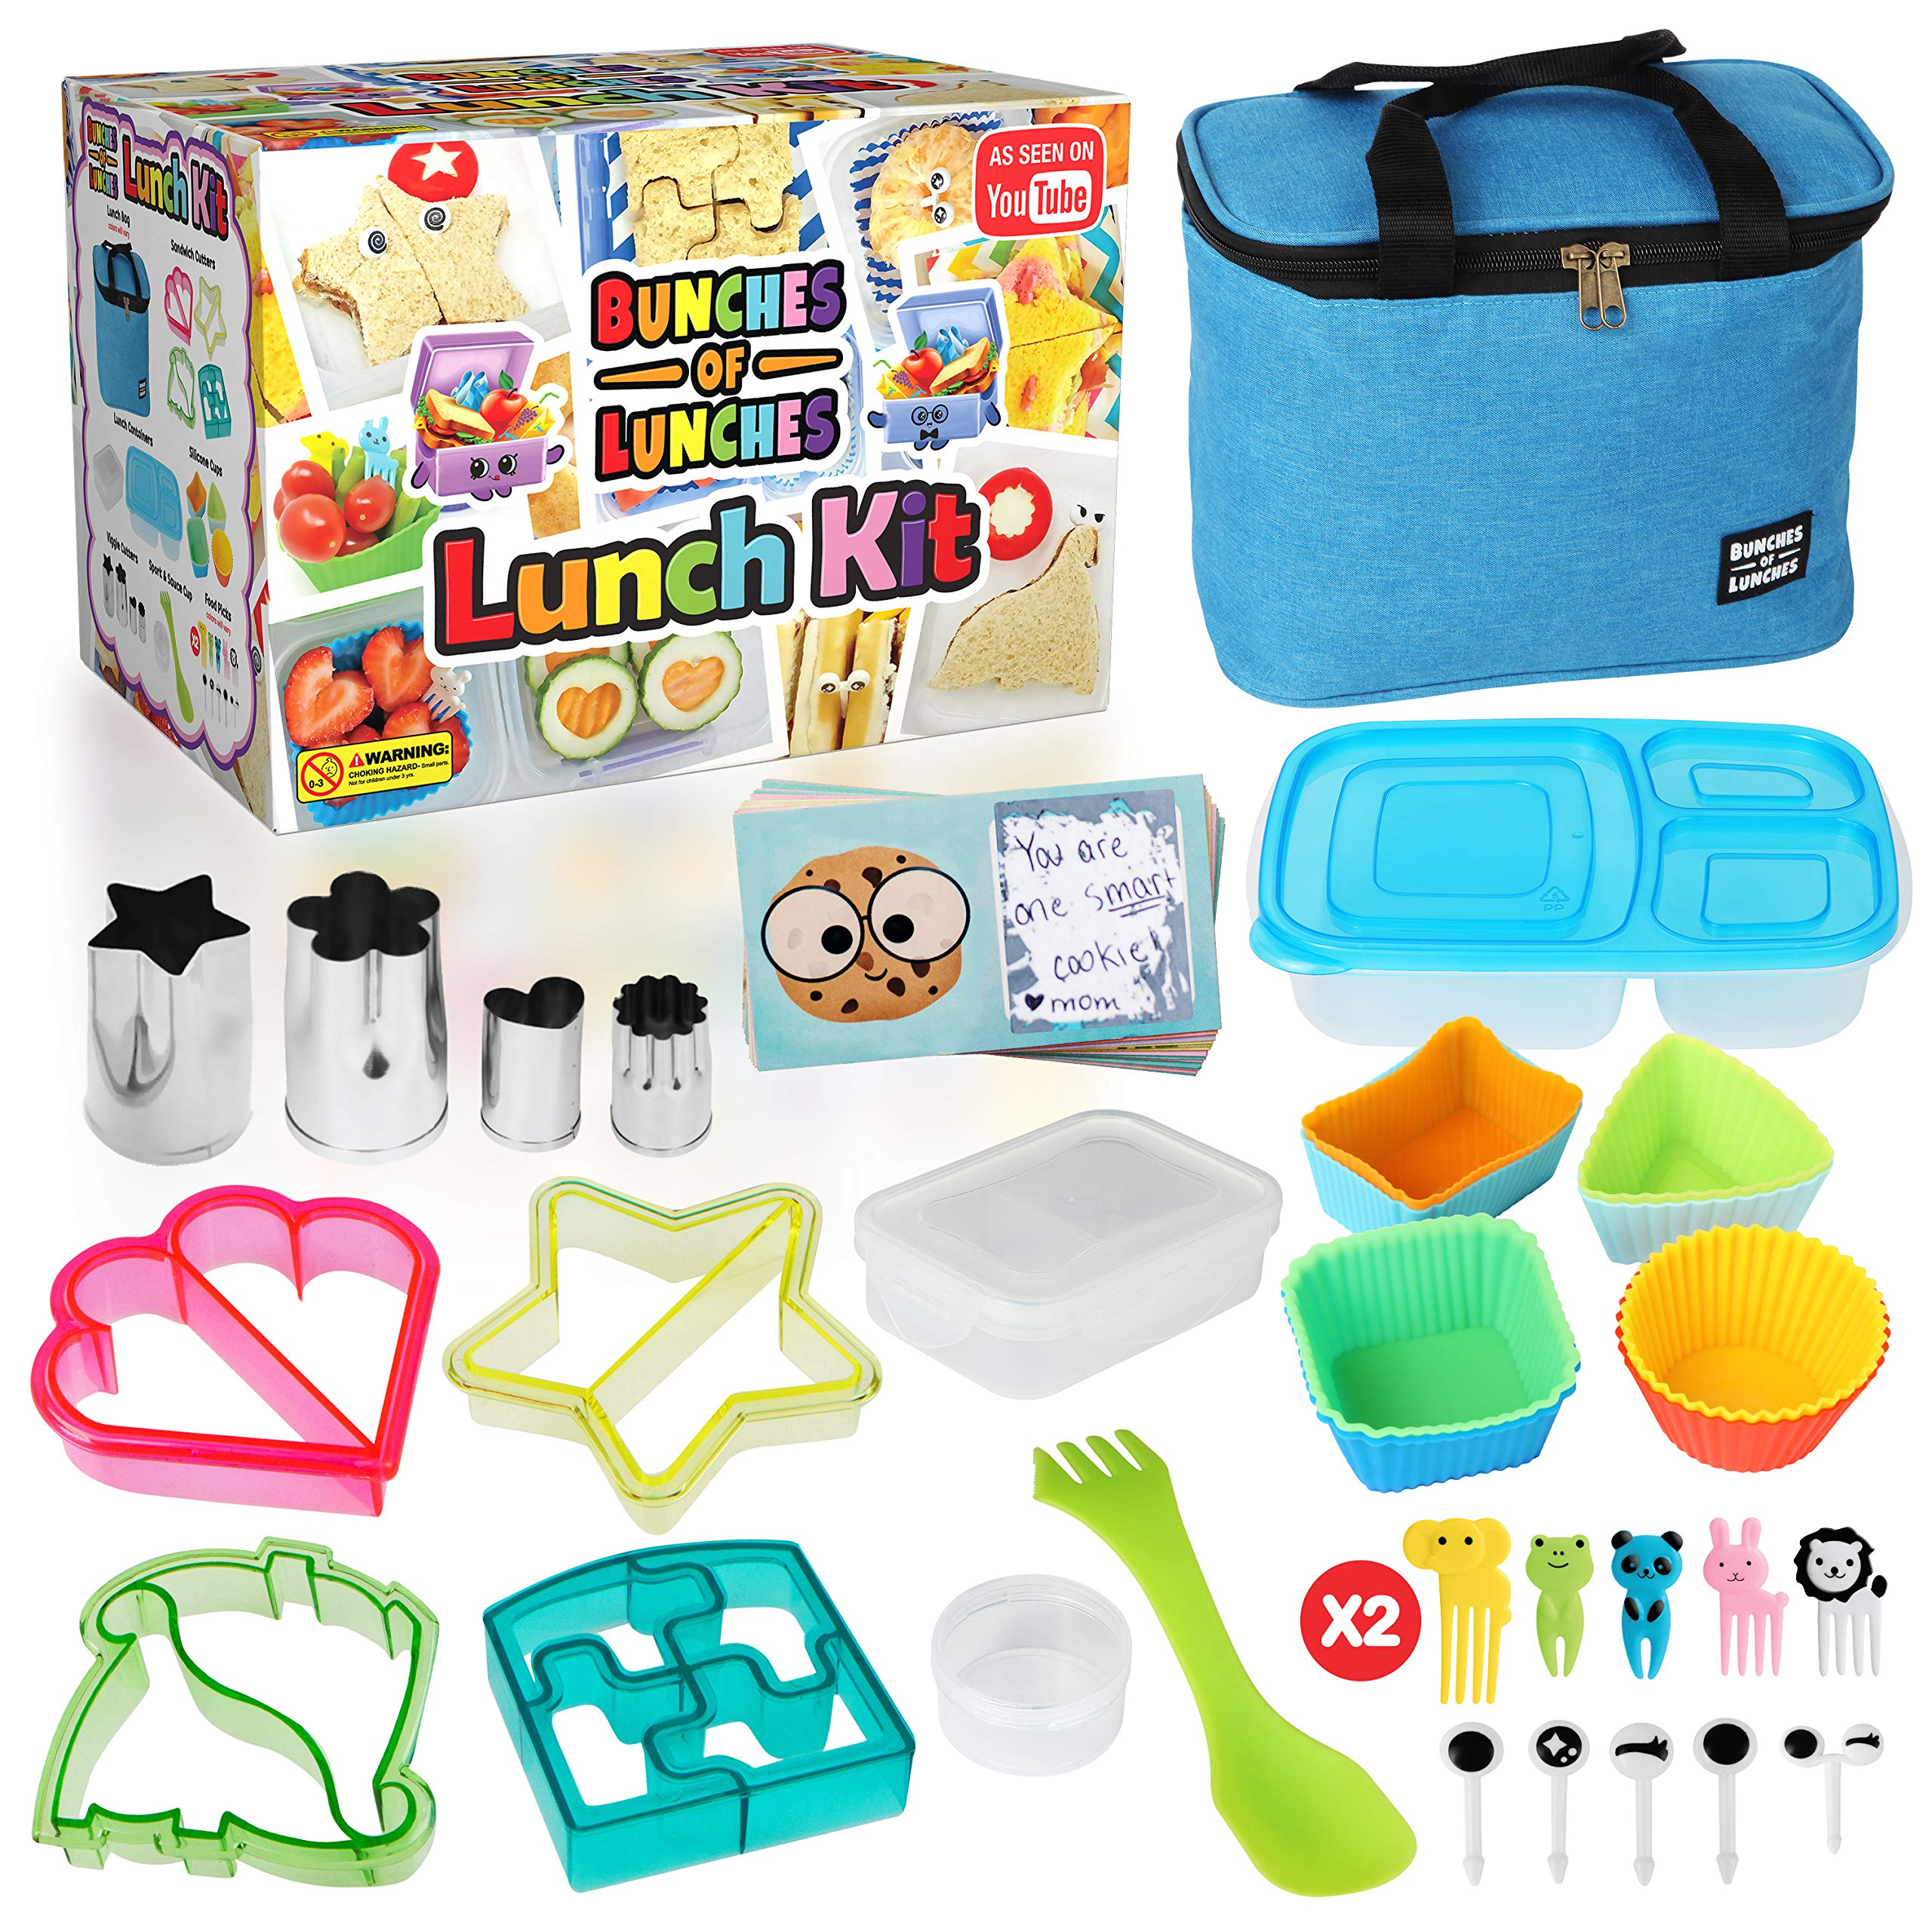 Bunches of Lunches Bento Box Lunch Kit for Kids - Insulated Kids Lunch Box with Fun Sandwich and Veggie Cutters Plus Food Picks, Silicone Cups and Cute Scratch-Off Note Cards (39 Piece Set) (Blue)